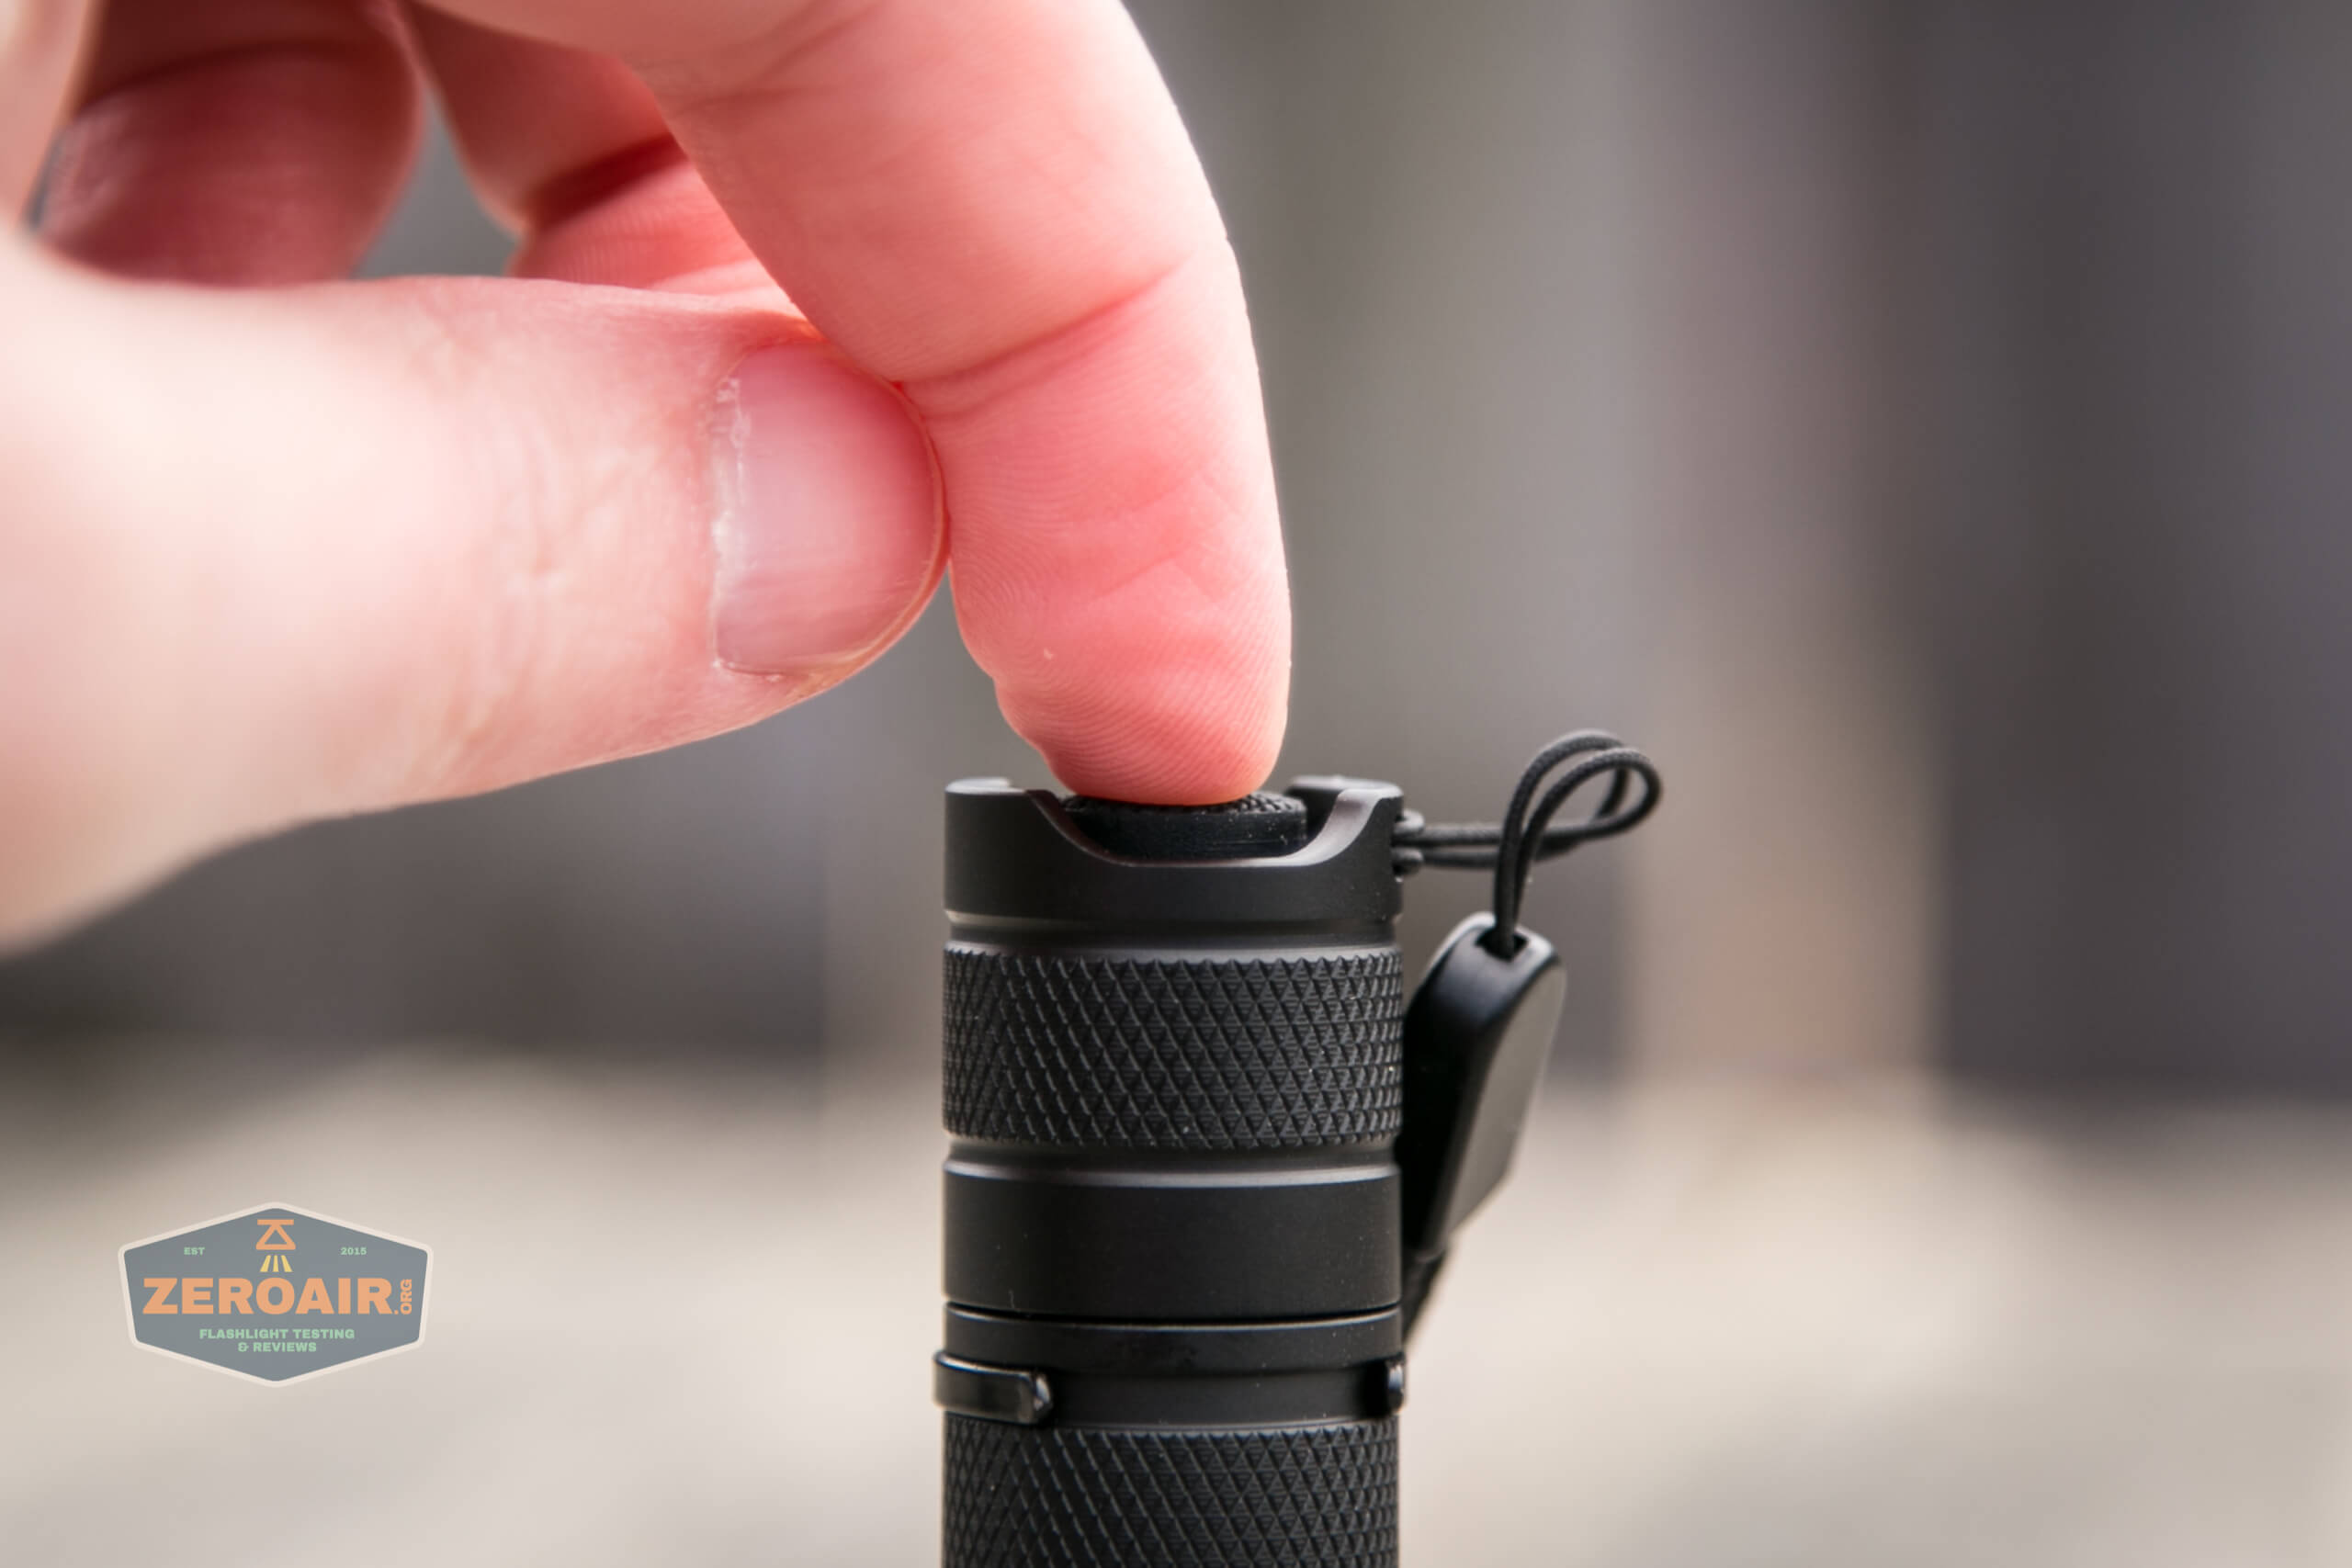 convoy t2 updated 14500/AA flashlight reverse clicky actuation